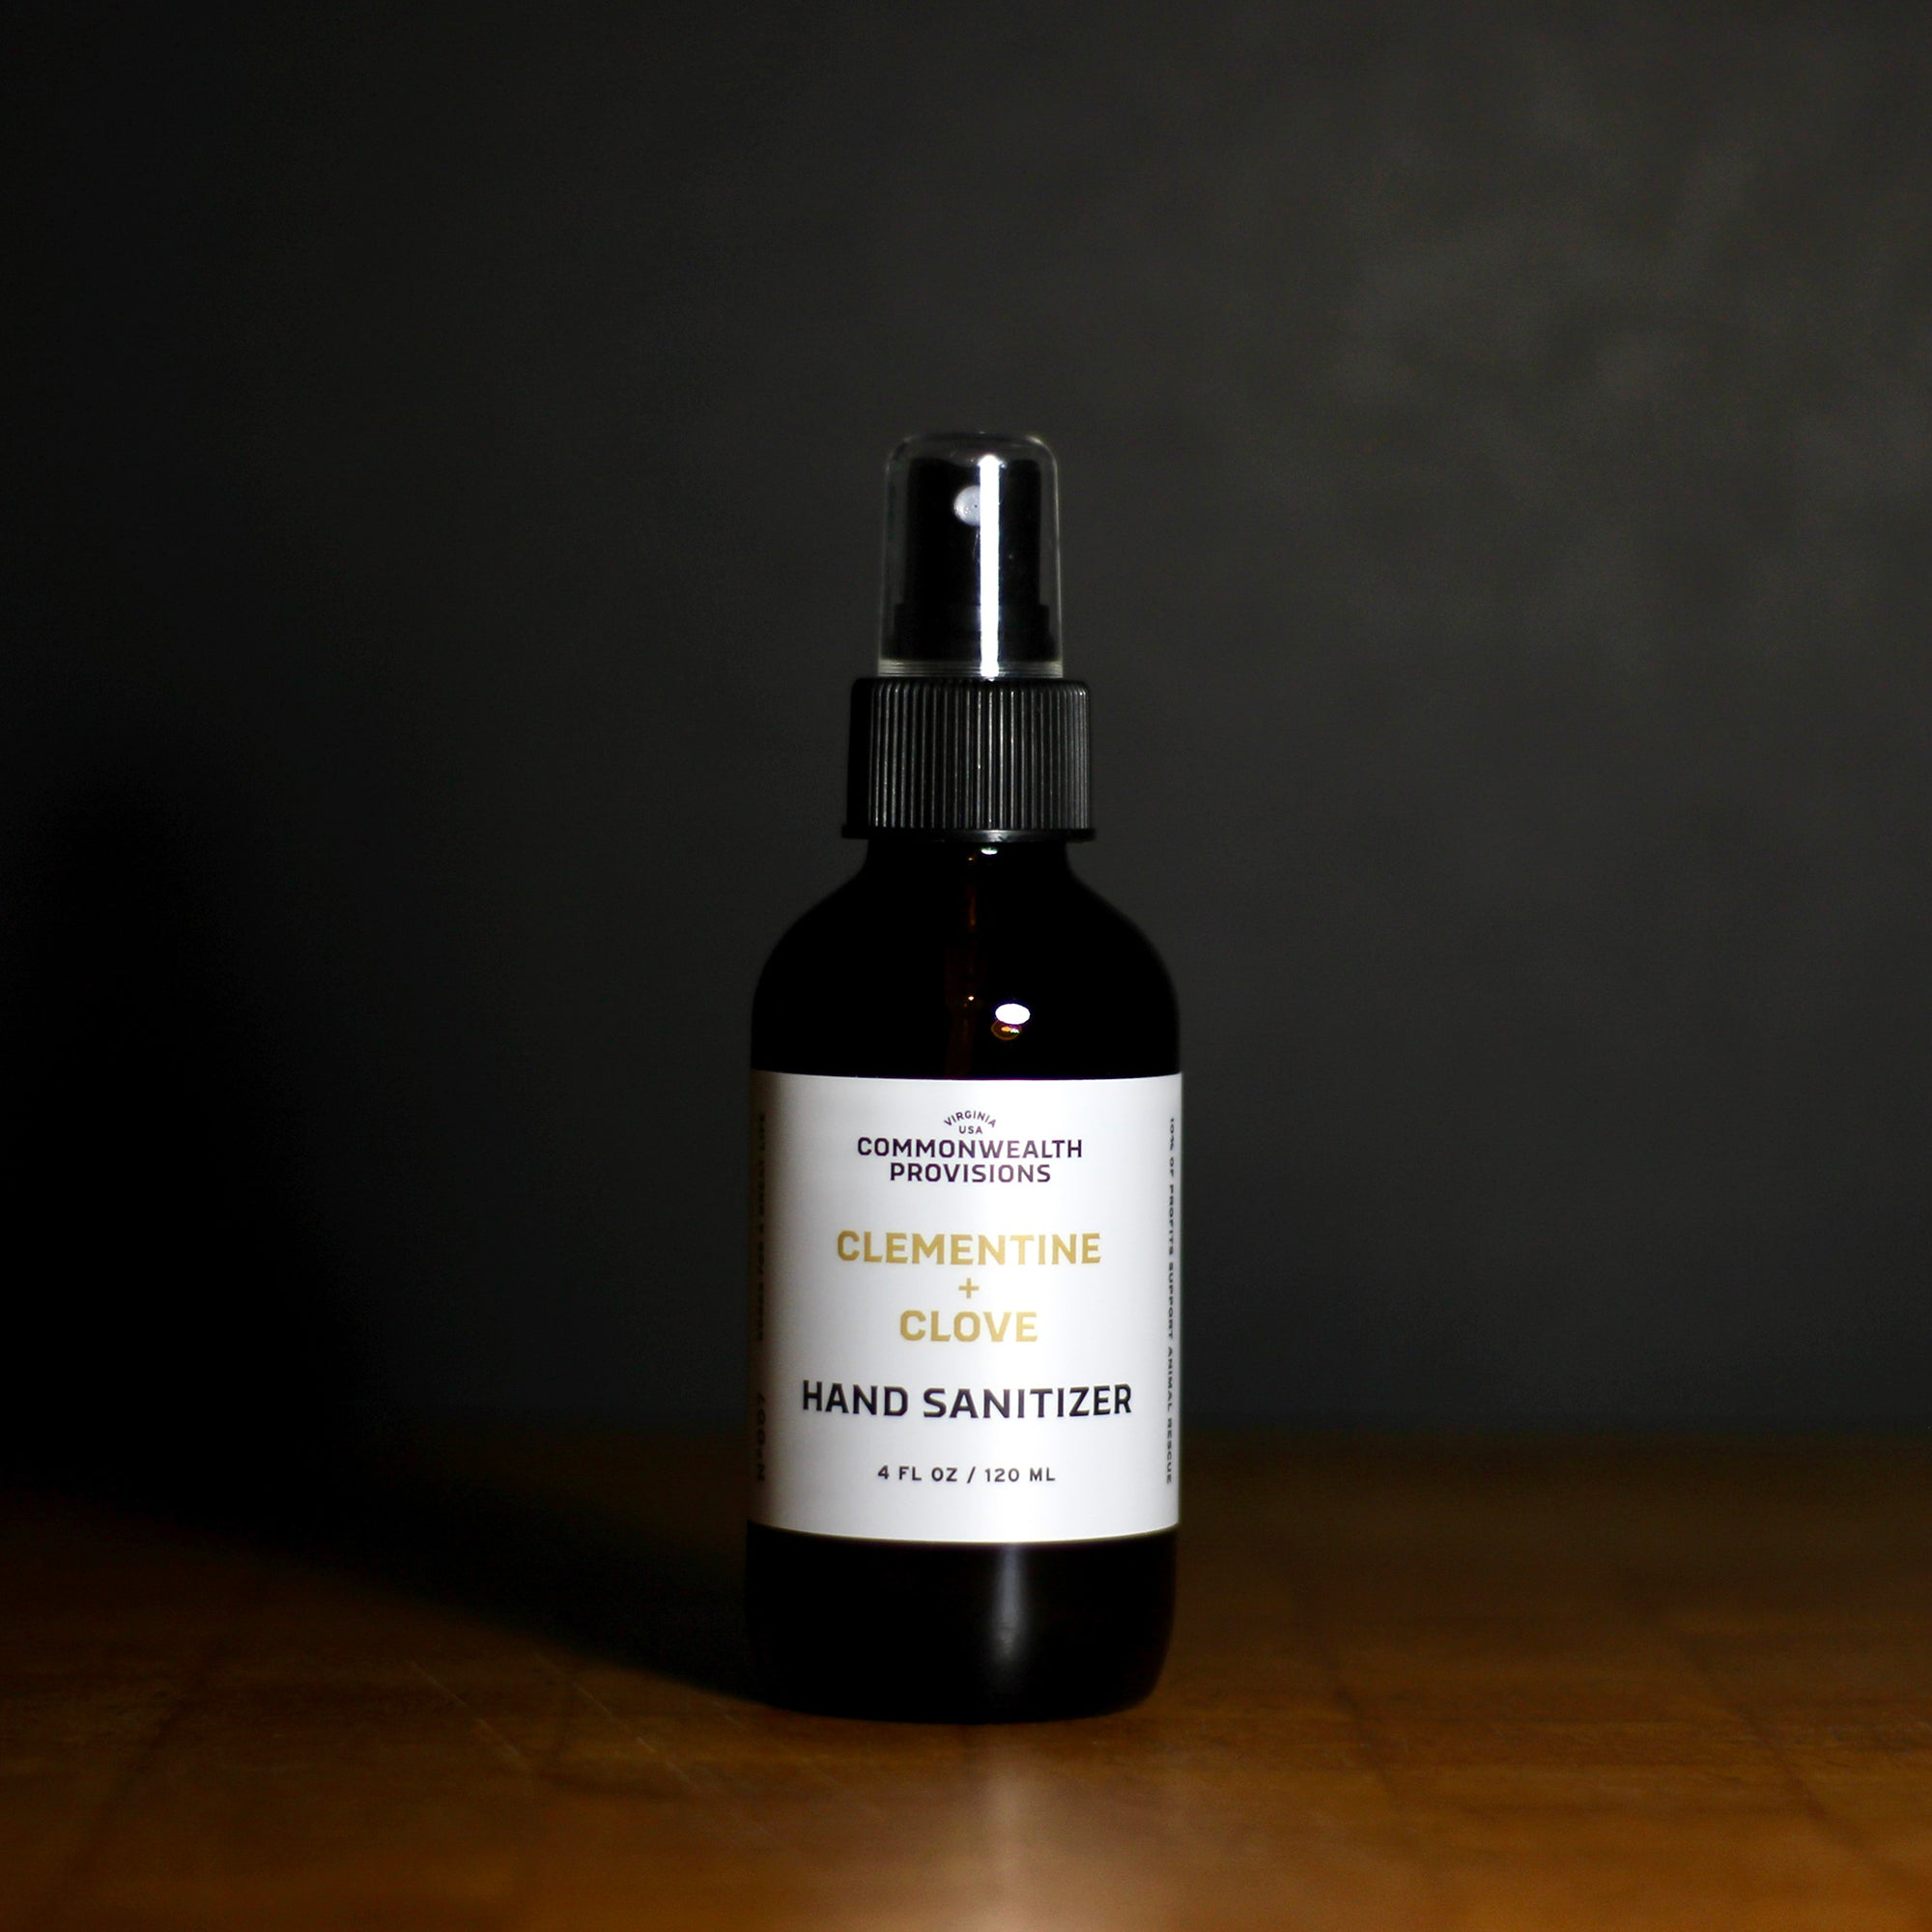 Commonwealth Provisions Hand Sanitizer